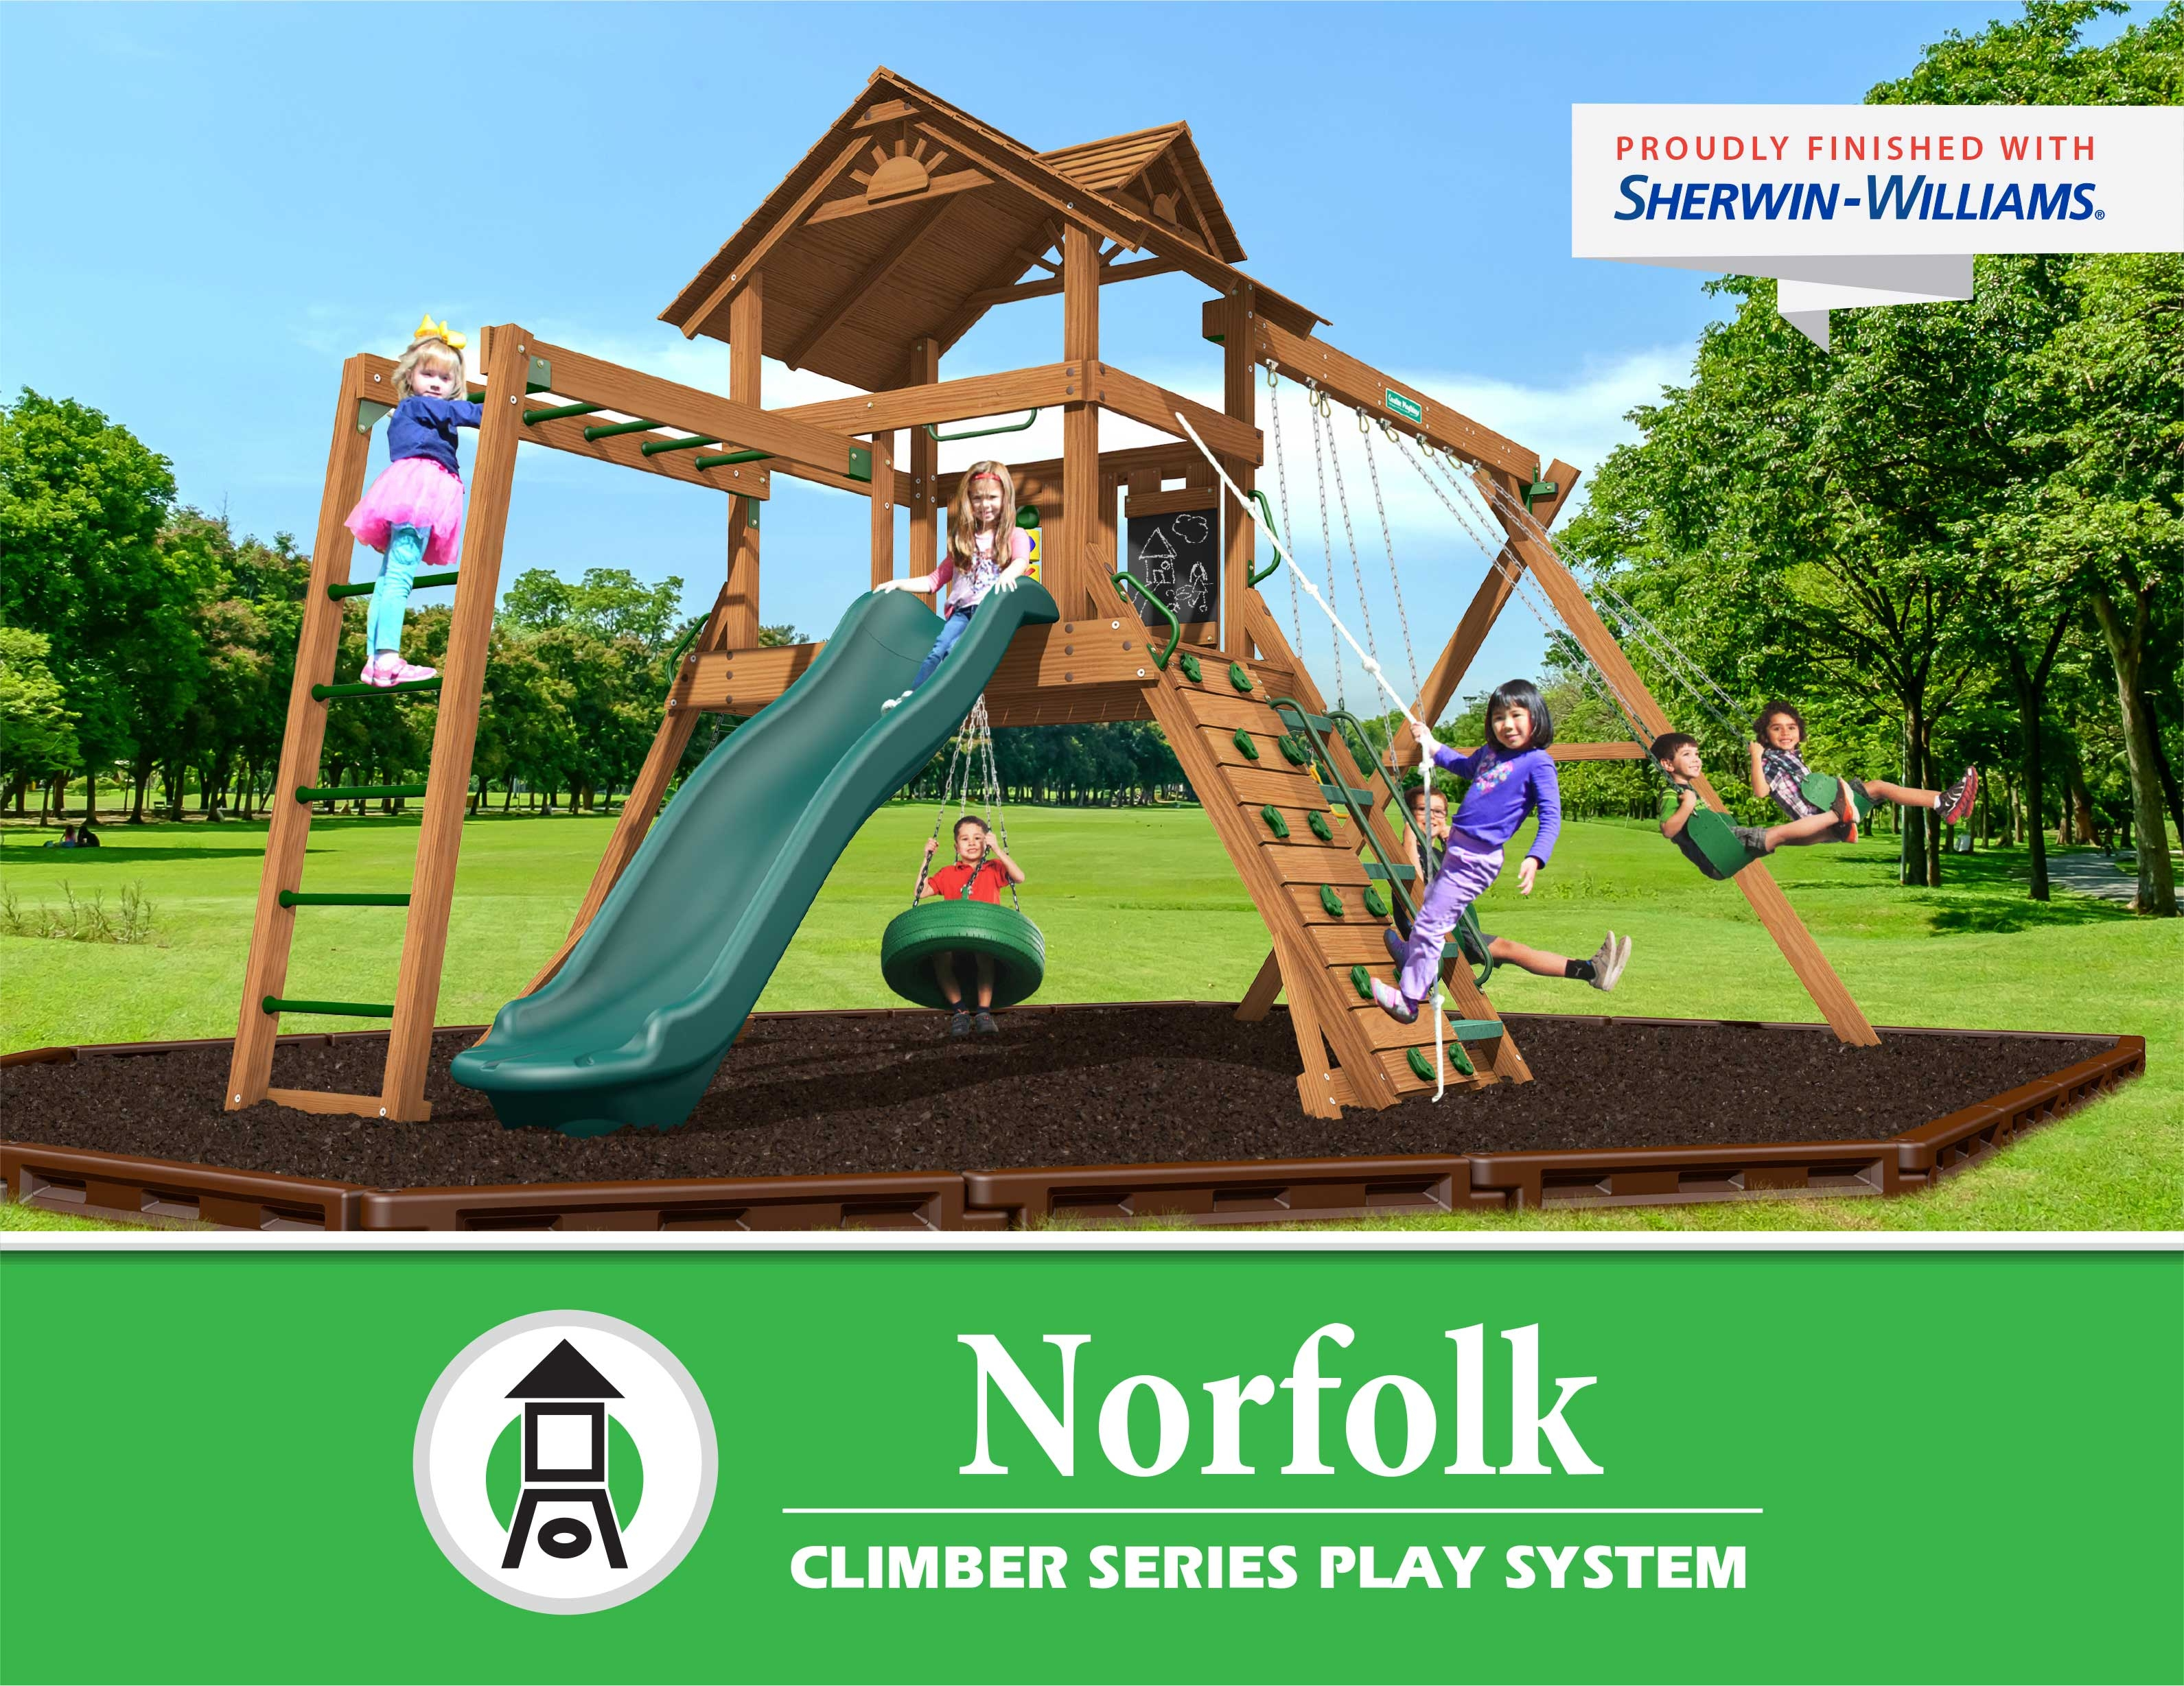 Creative Playthings Norfolk Climber Series Play System